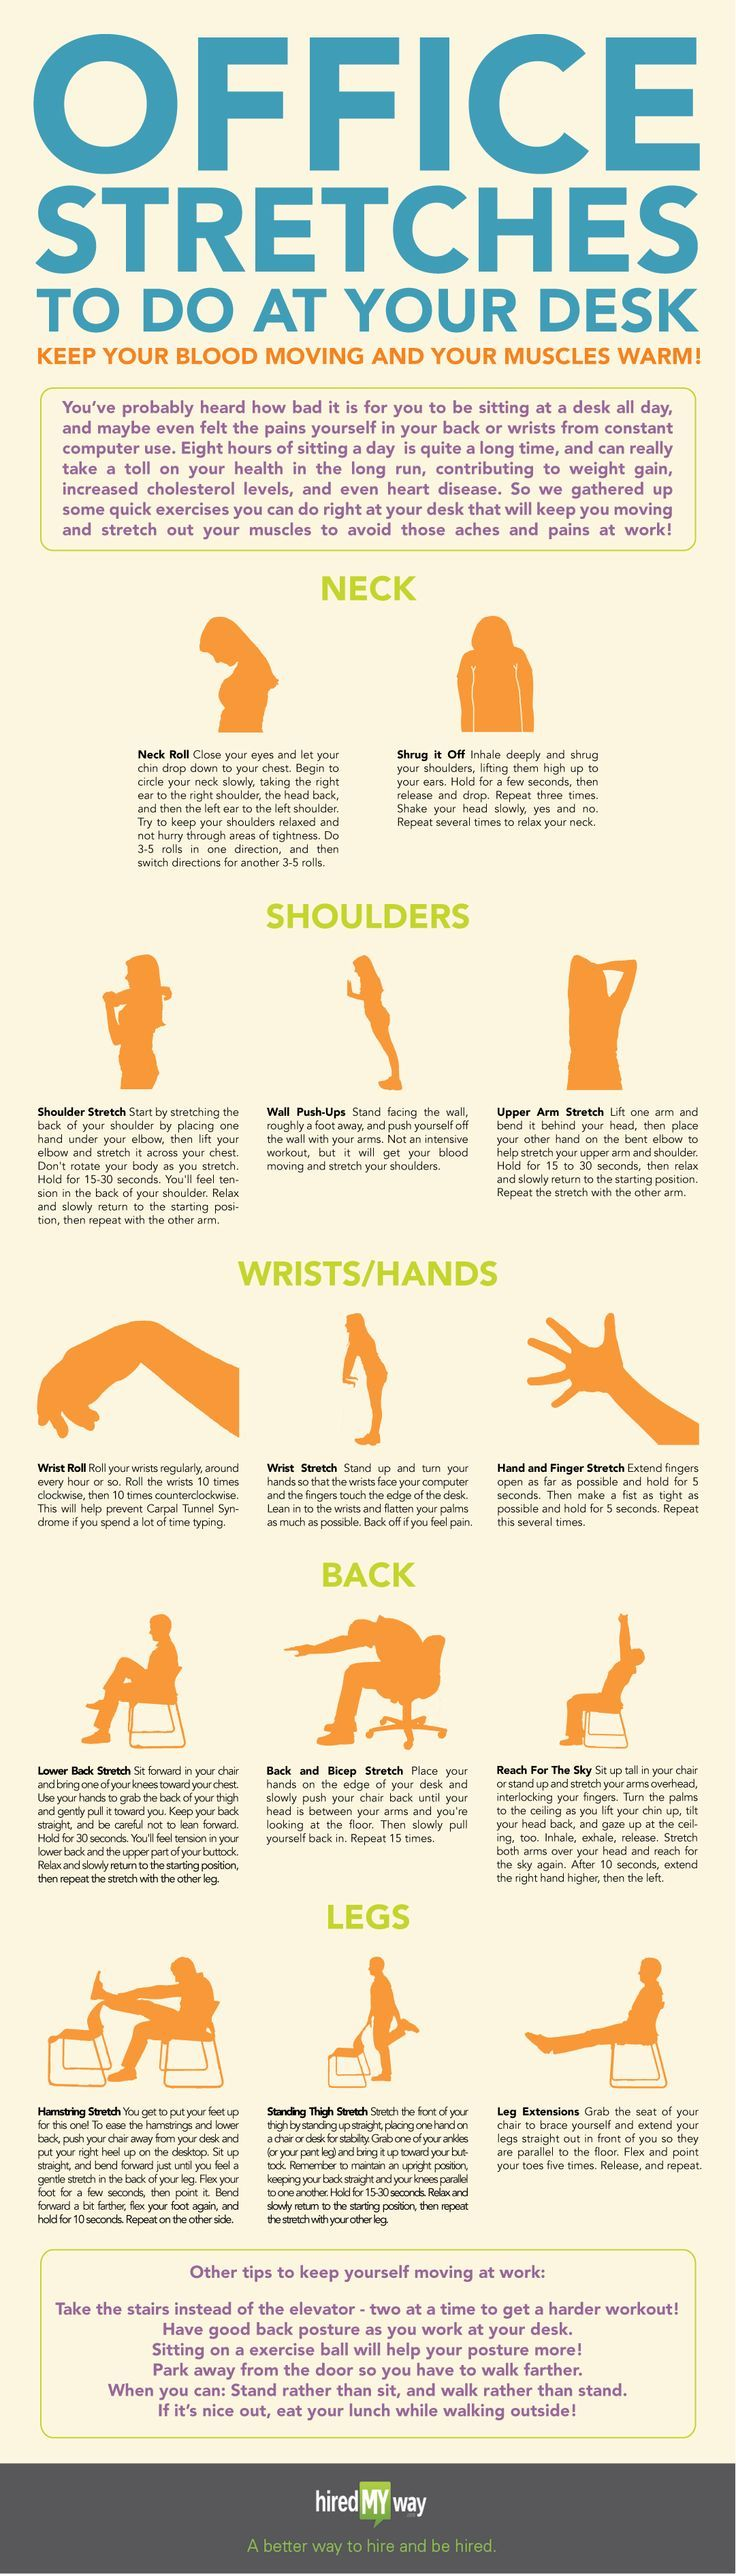 Neck and back pain from sitting at your desk all day? Check out these stretches to help you out!